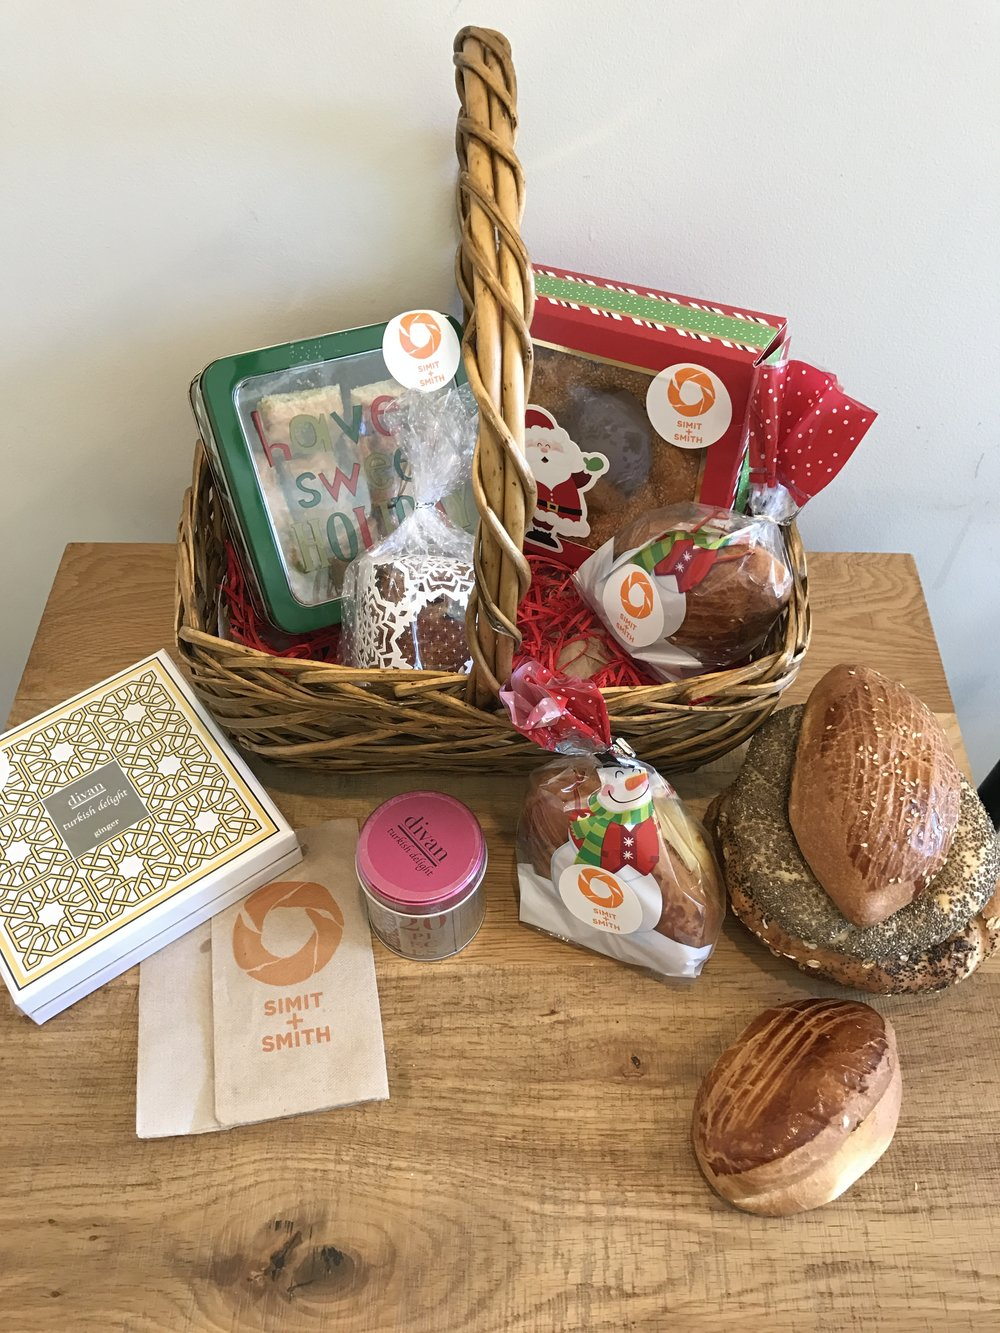 Simit and Smith gift baskets - Photo courtesy Simit and Smith